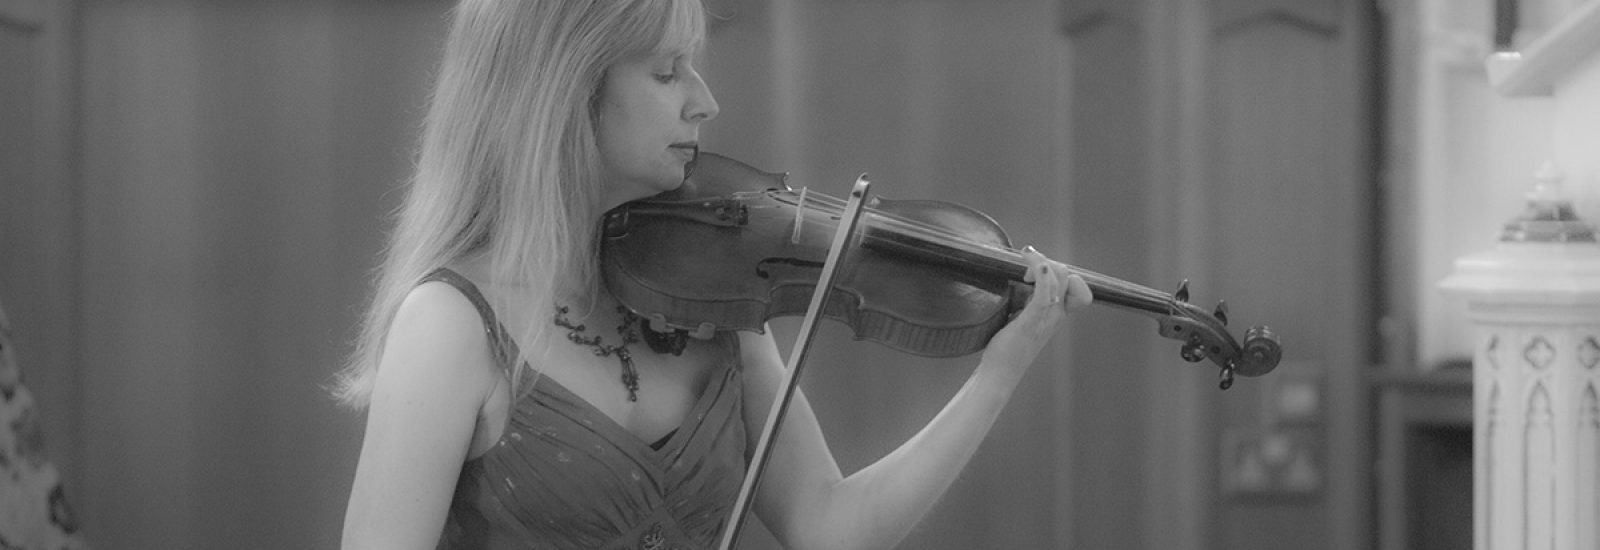 sue-aston-composer-violin